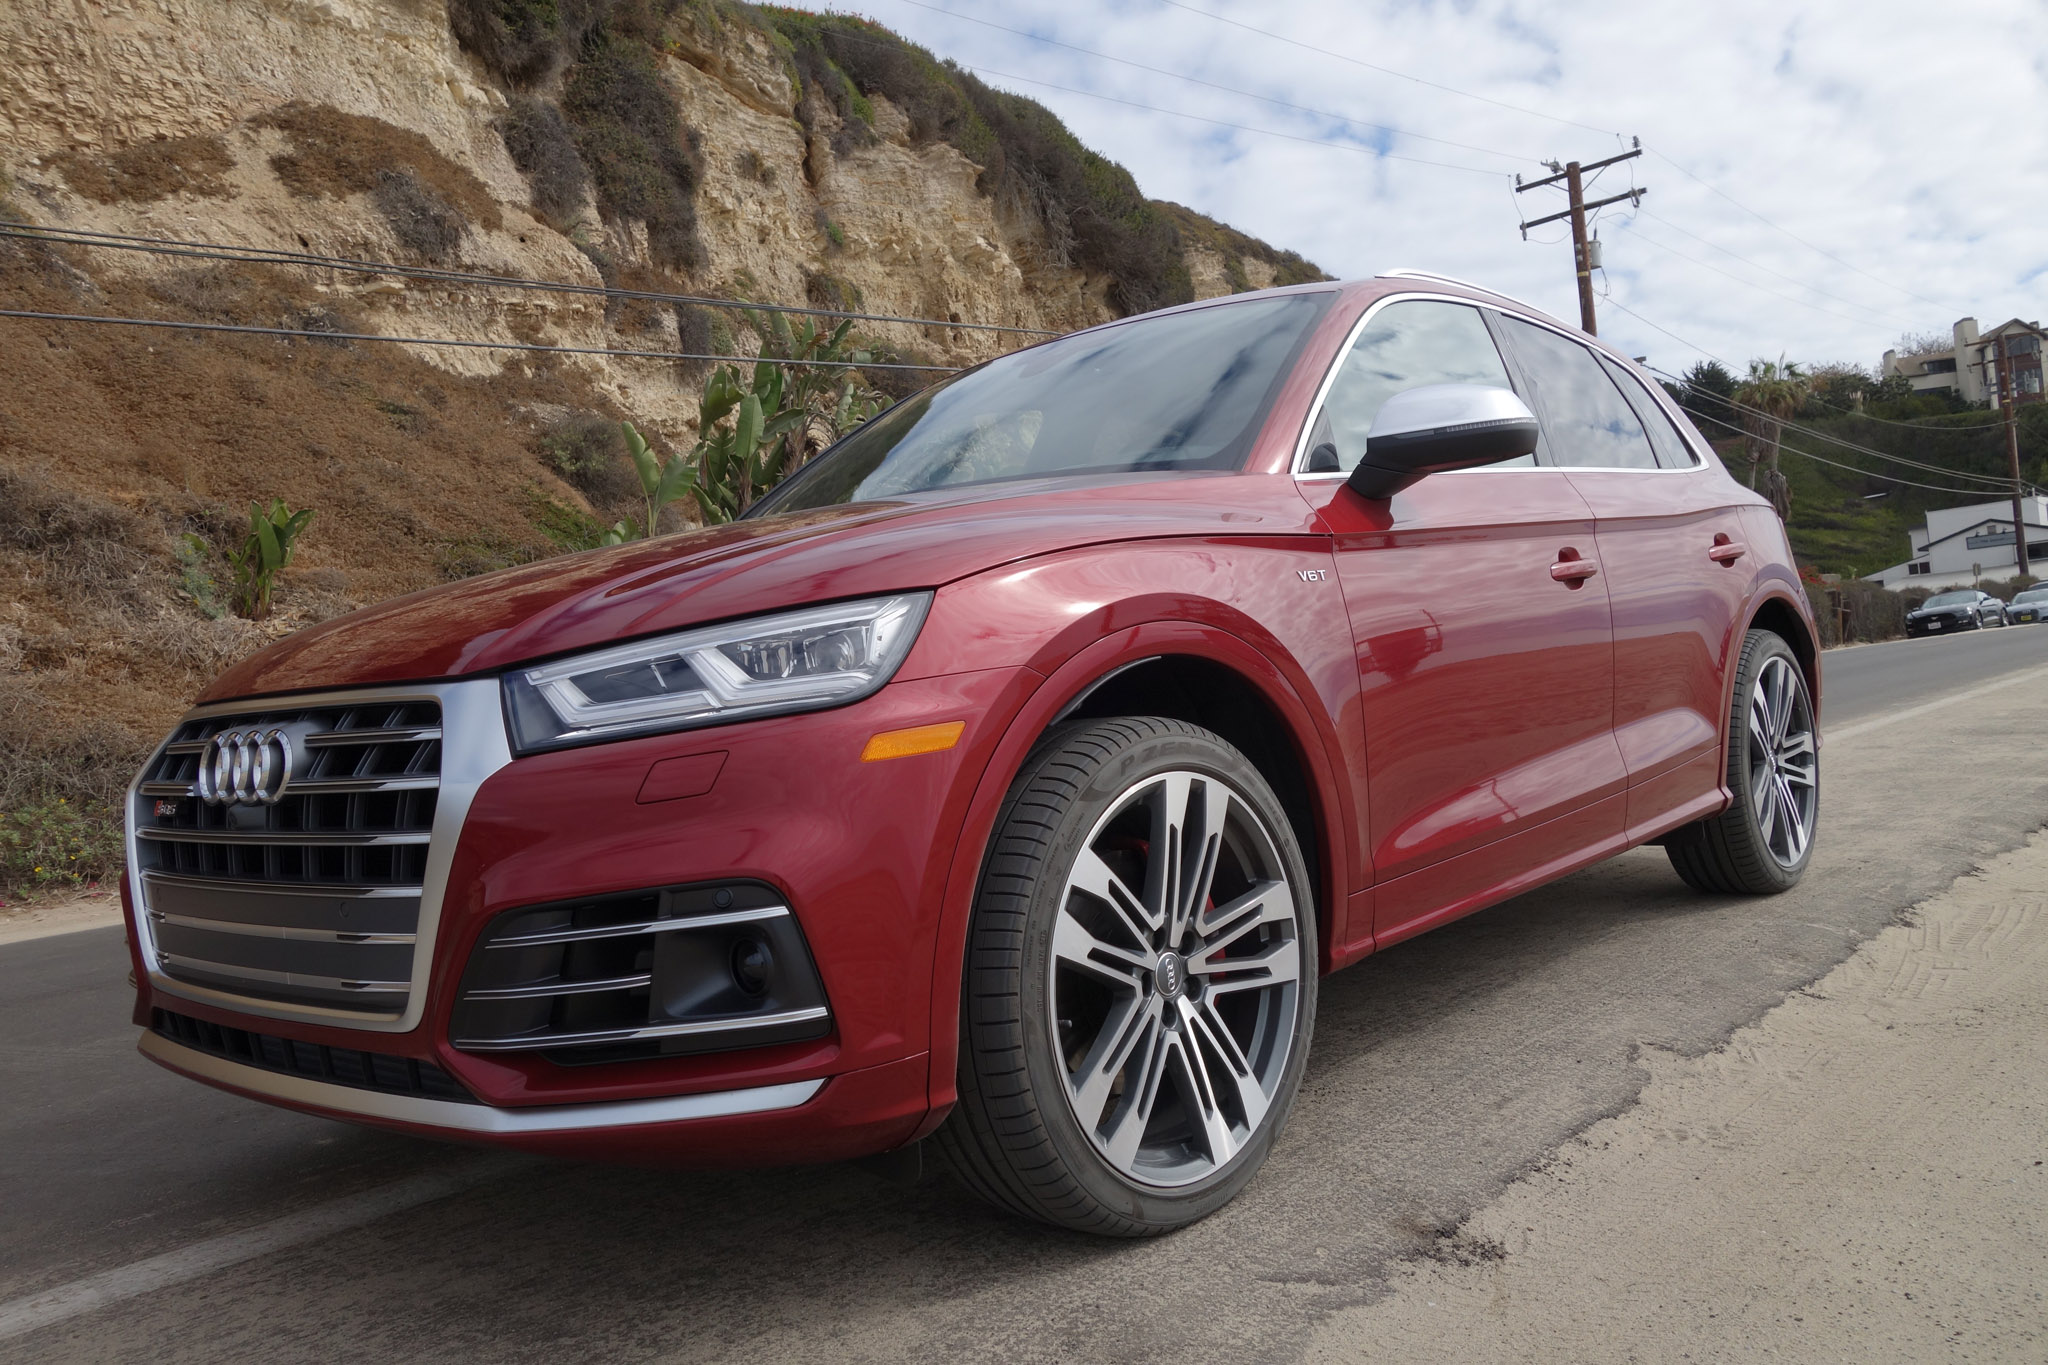 2017 Audi Q5 Msrp >> 2018 Audi Q5 vs. 2018 Audi SQ5 | Automobile Magazine